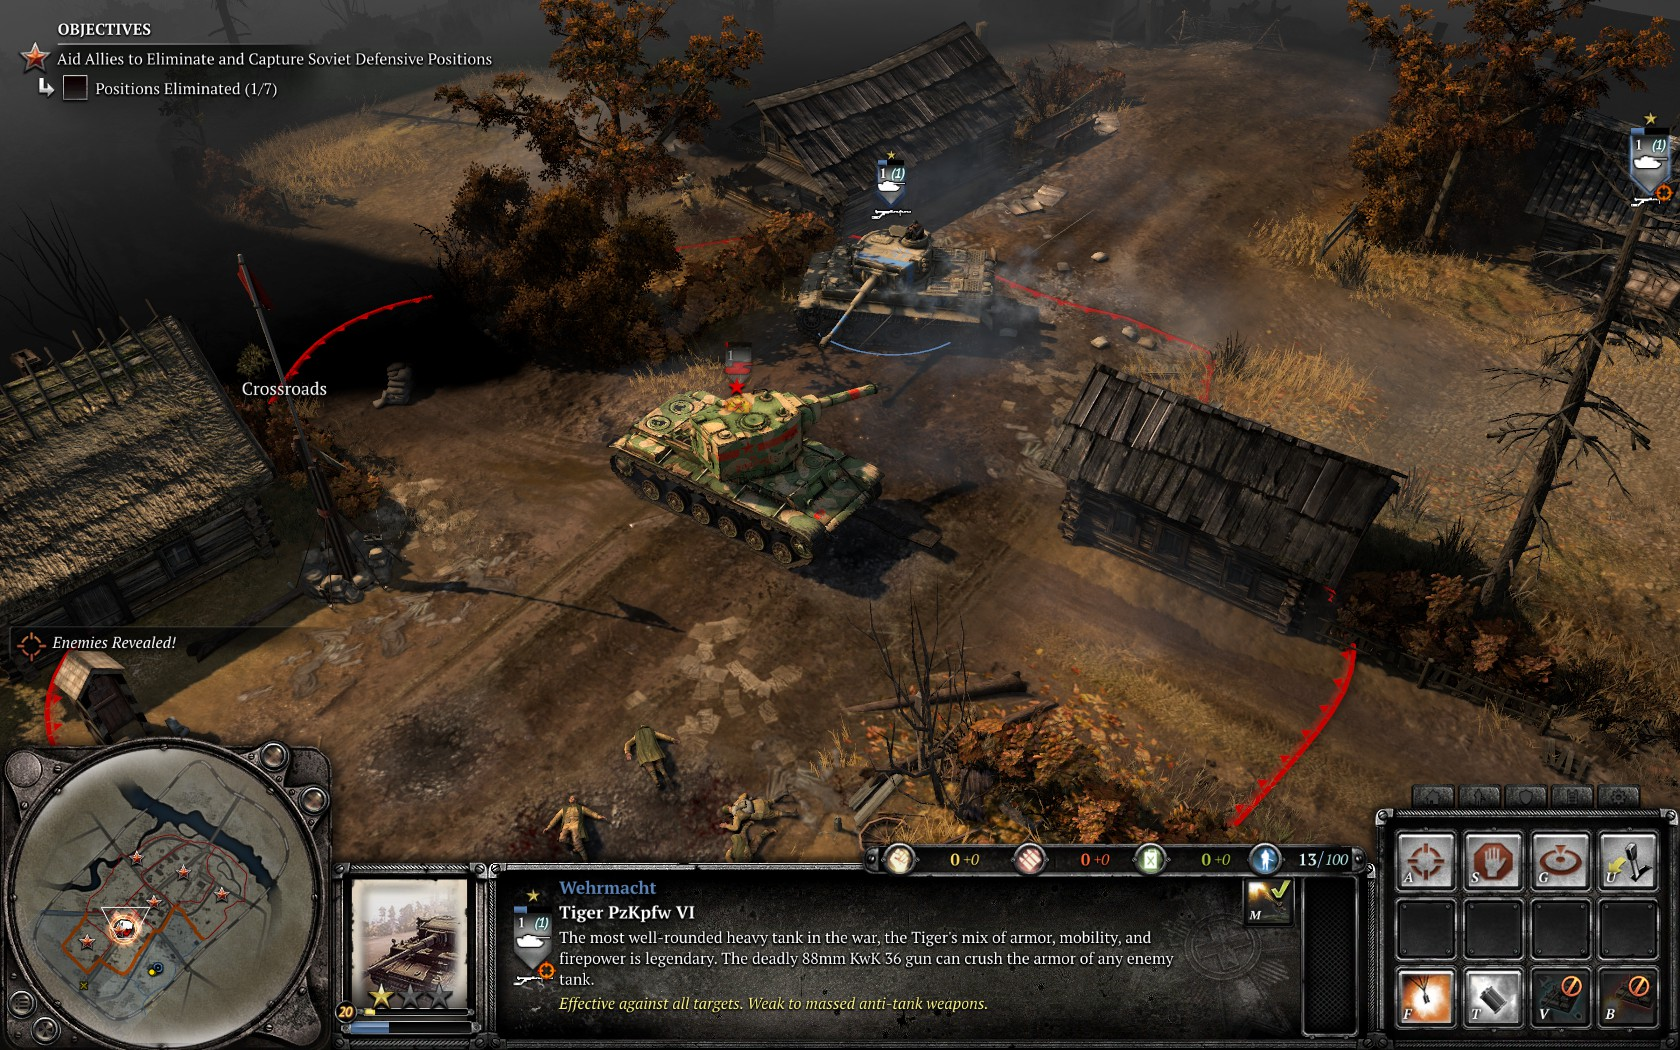 Case Blue Company Of Heroes 2 : Company of heroes case blue mission pack steam cd key bei